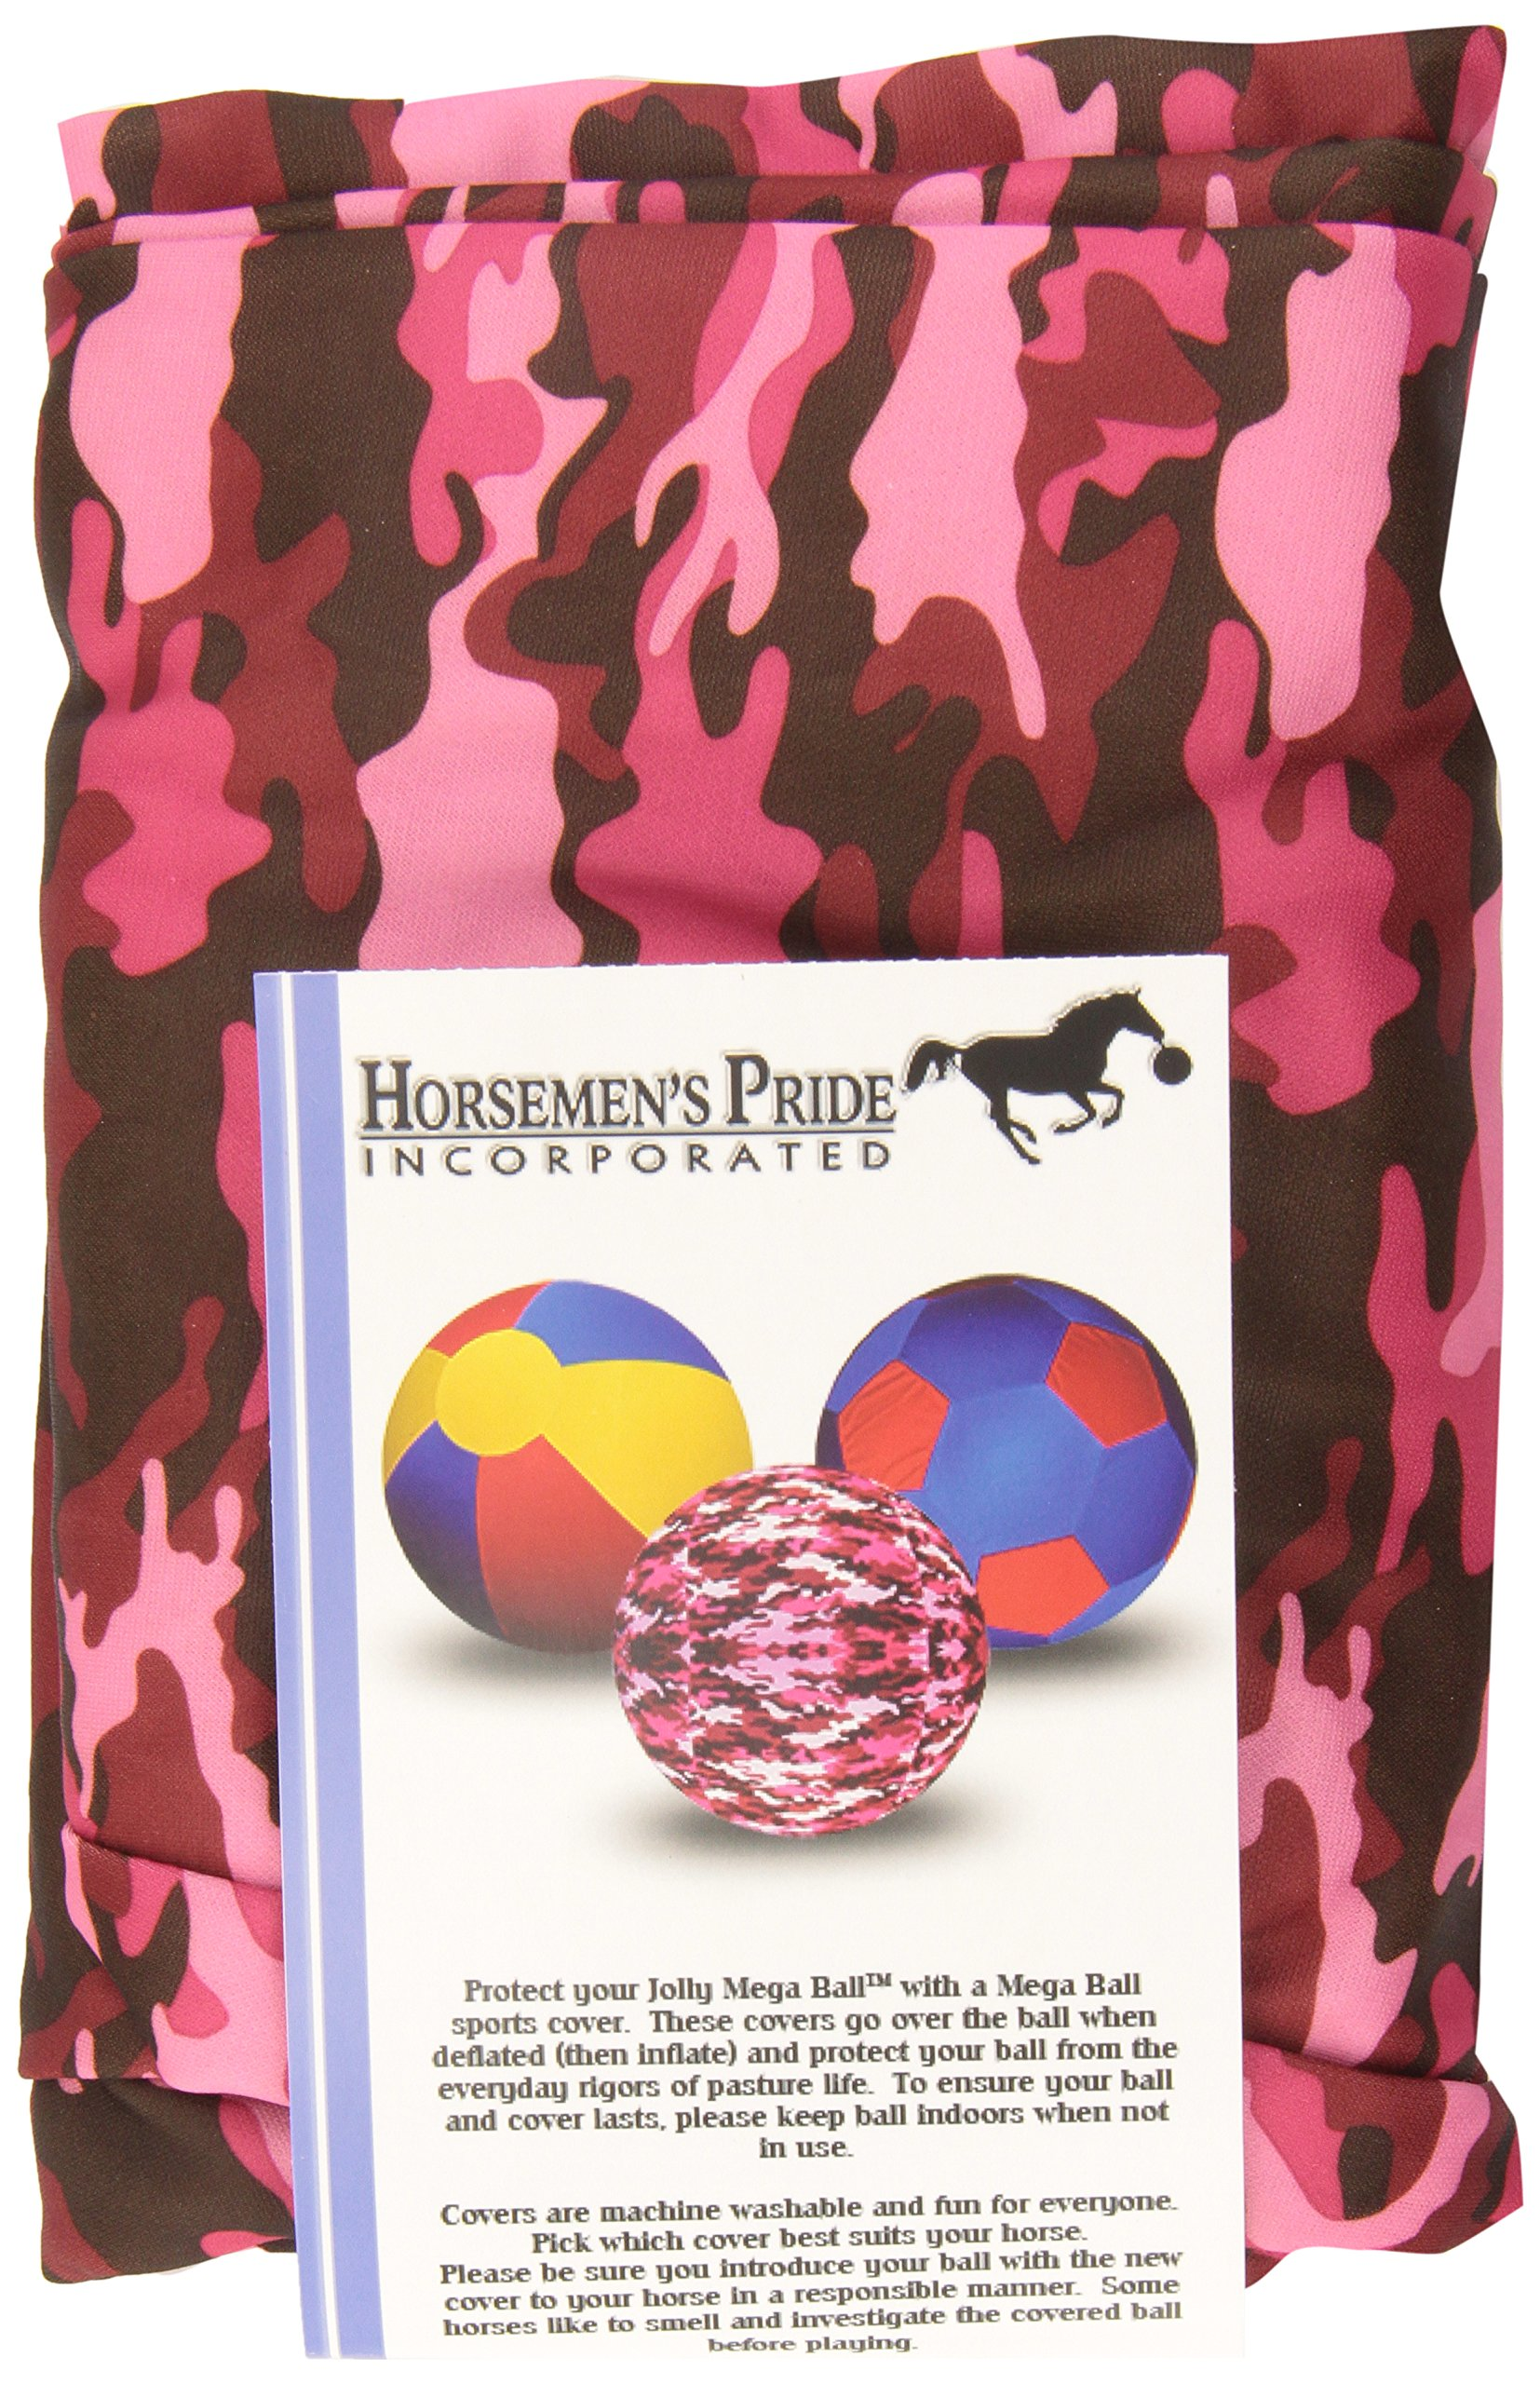 Horsemen's Pride Jolly Mega Cover for Horses, 30'', Pink Camo